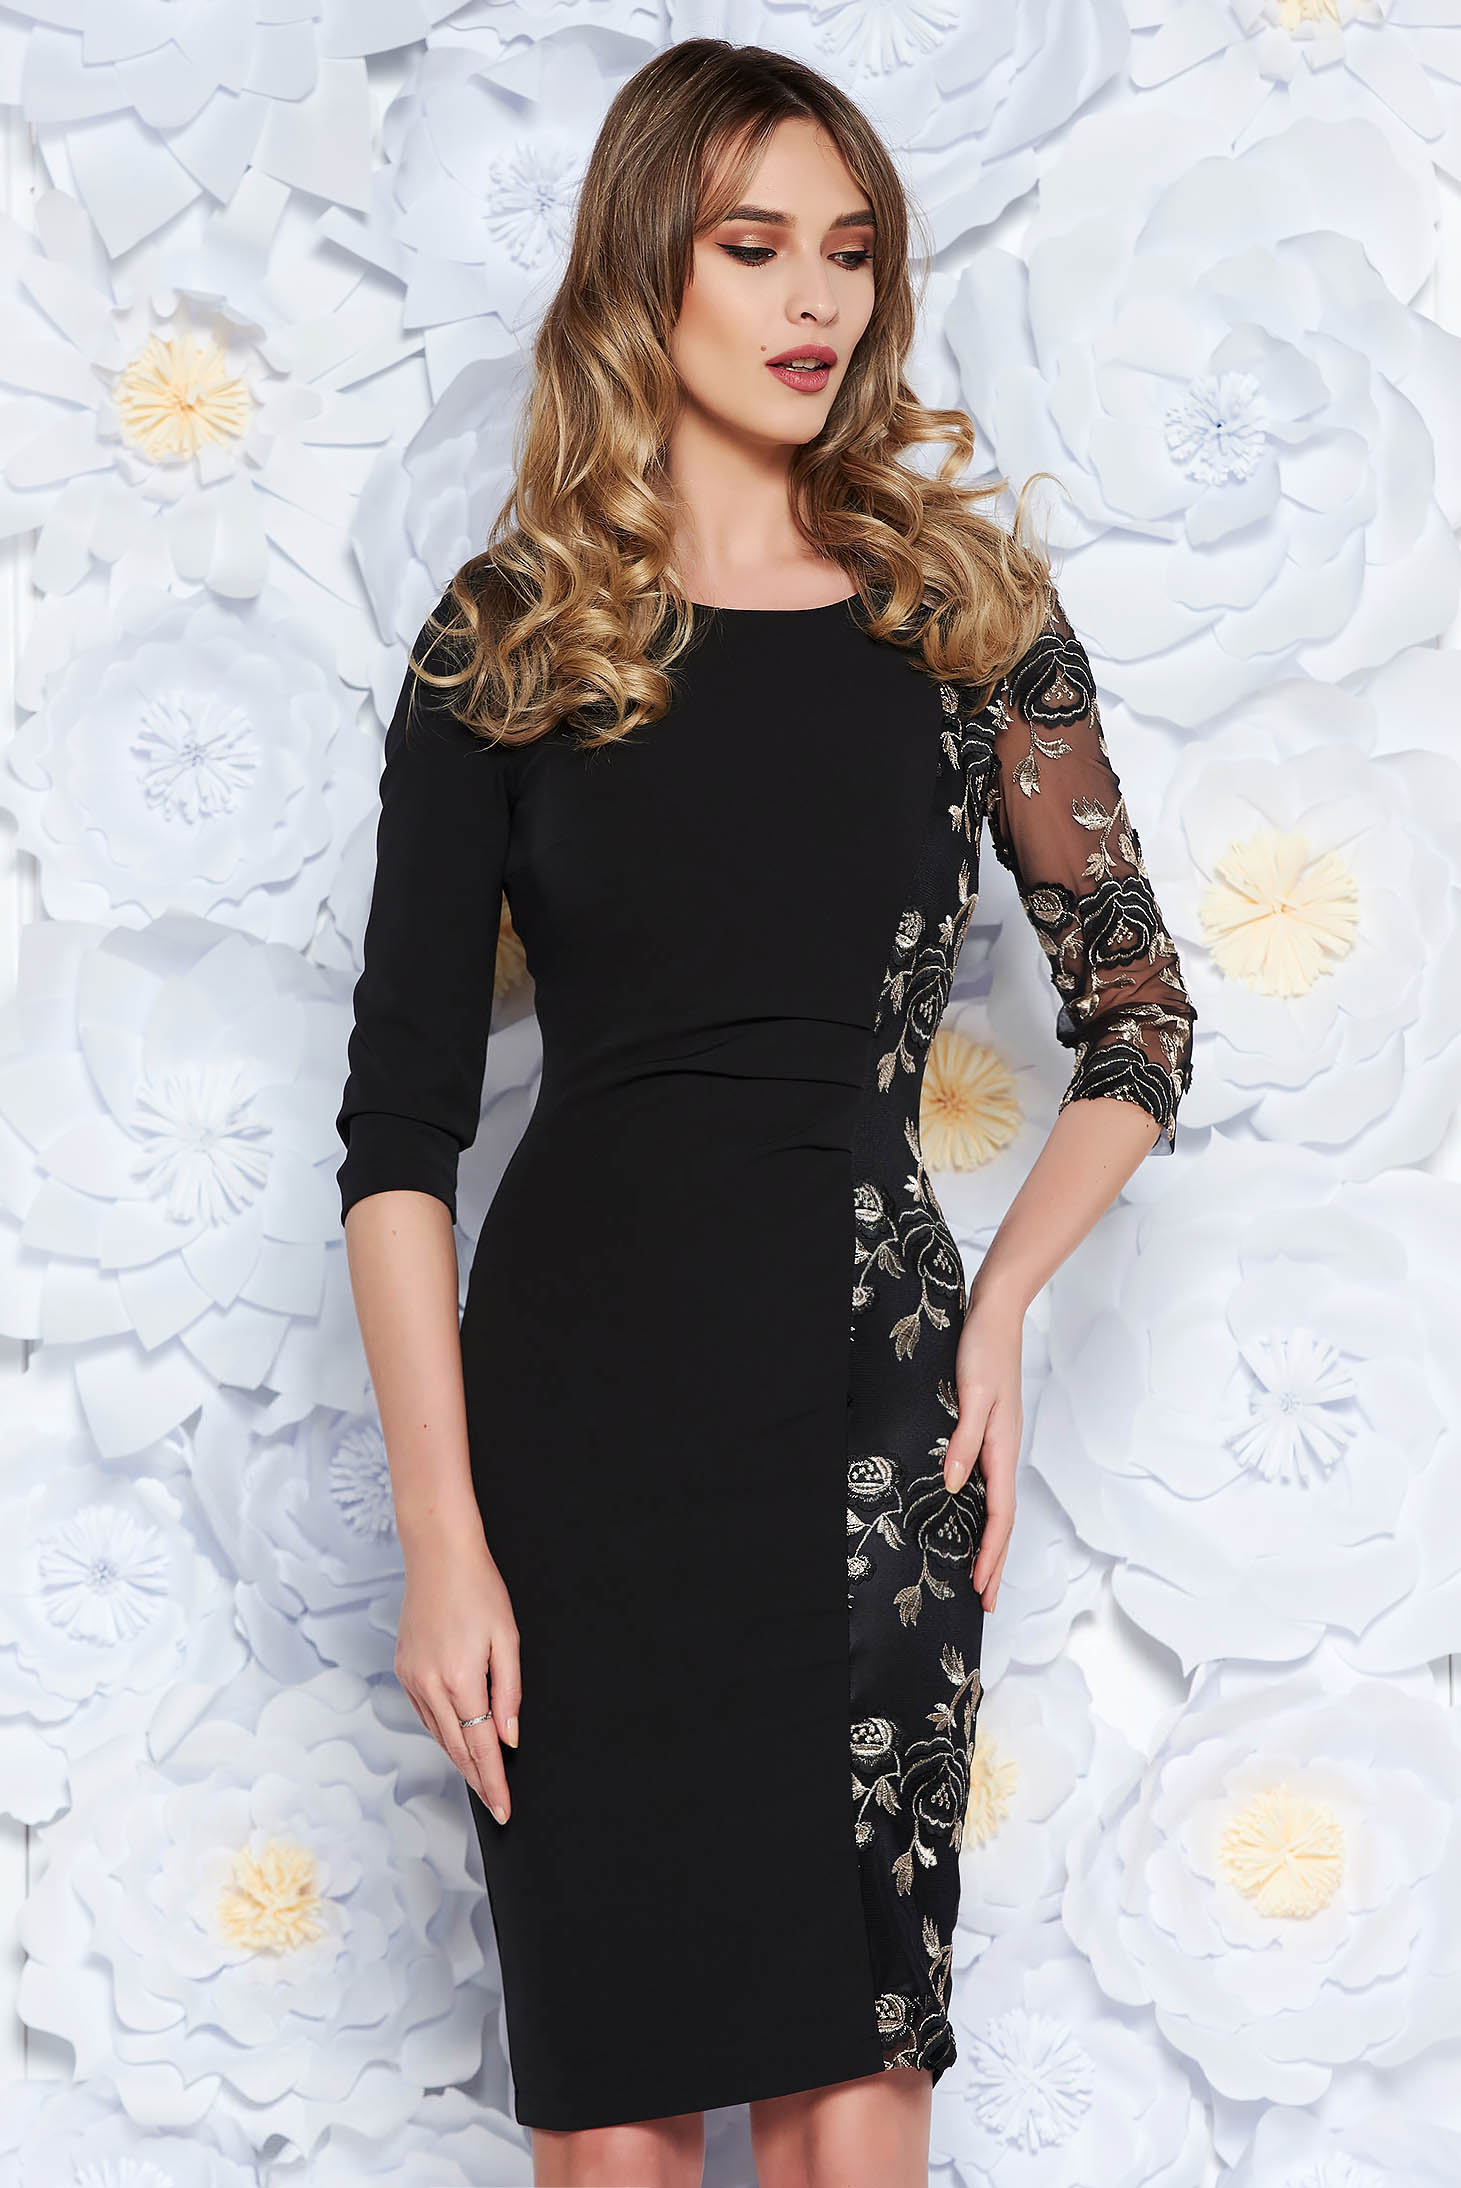 StarShinerS black occasional embroidered pencil dress slightly elastic fabric with net accessory